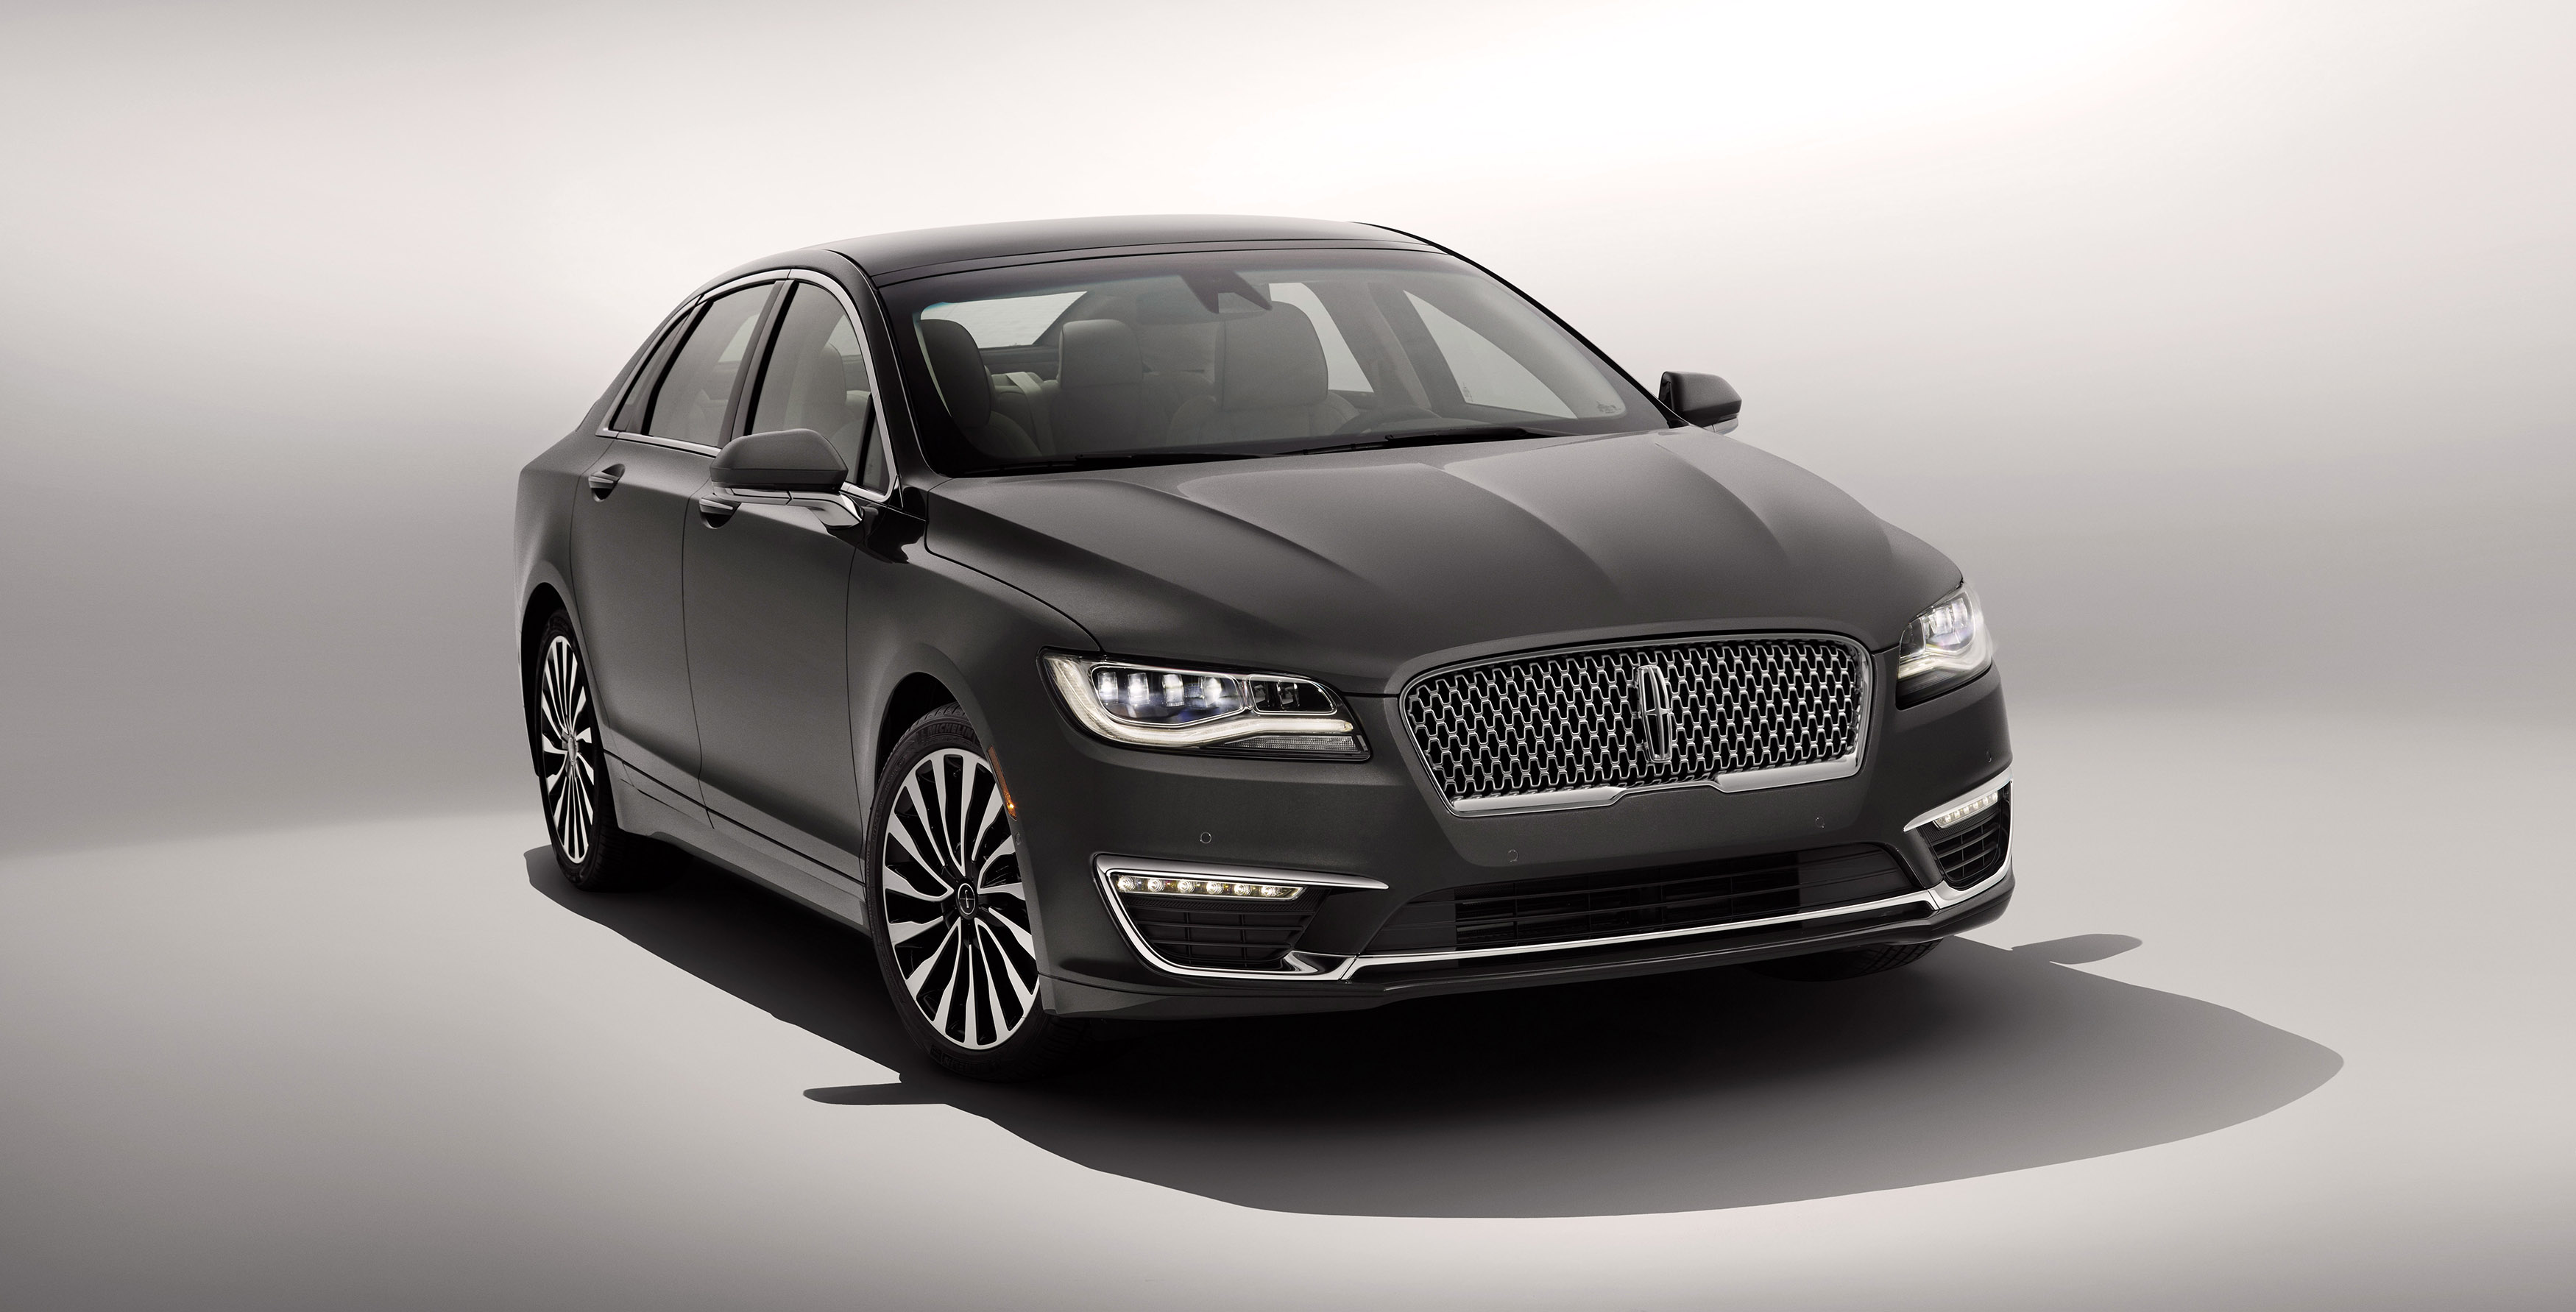 54 The Best 2020 Lincoln MKS Spy Photos Photos